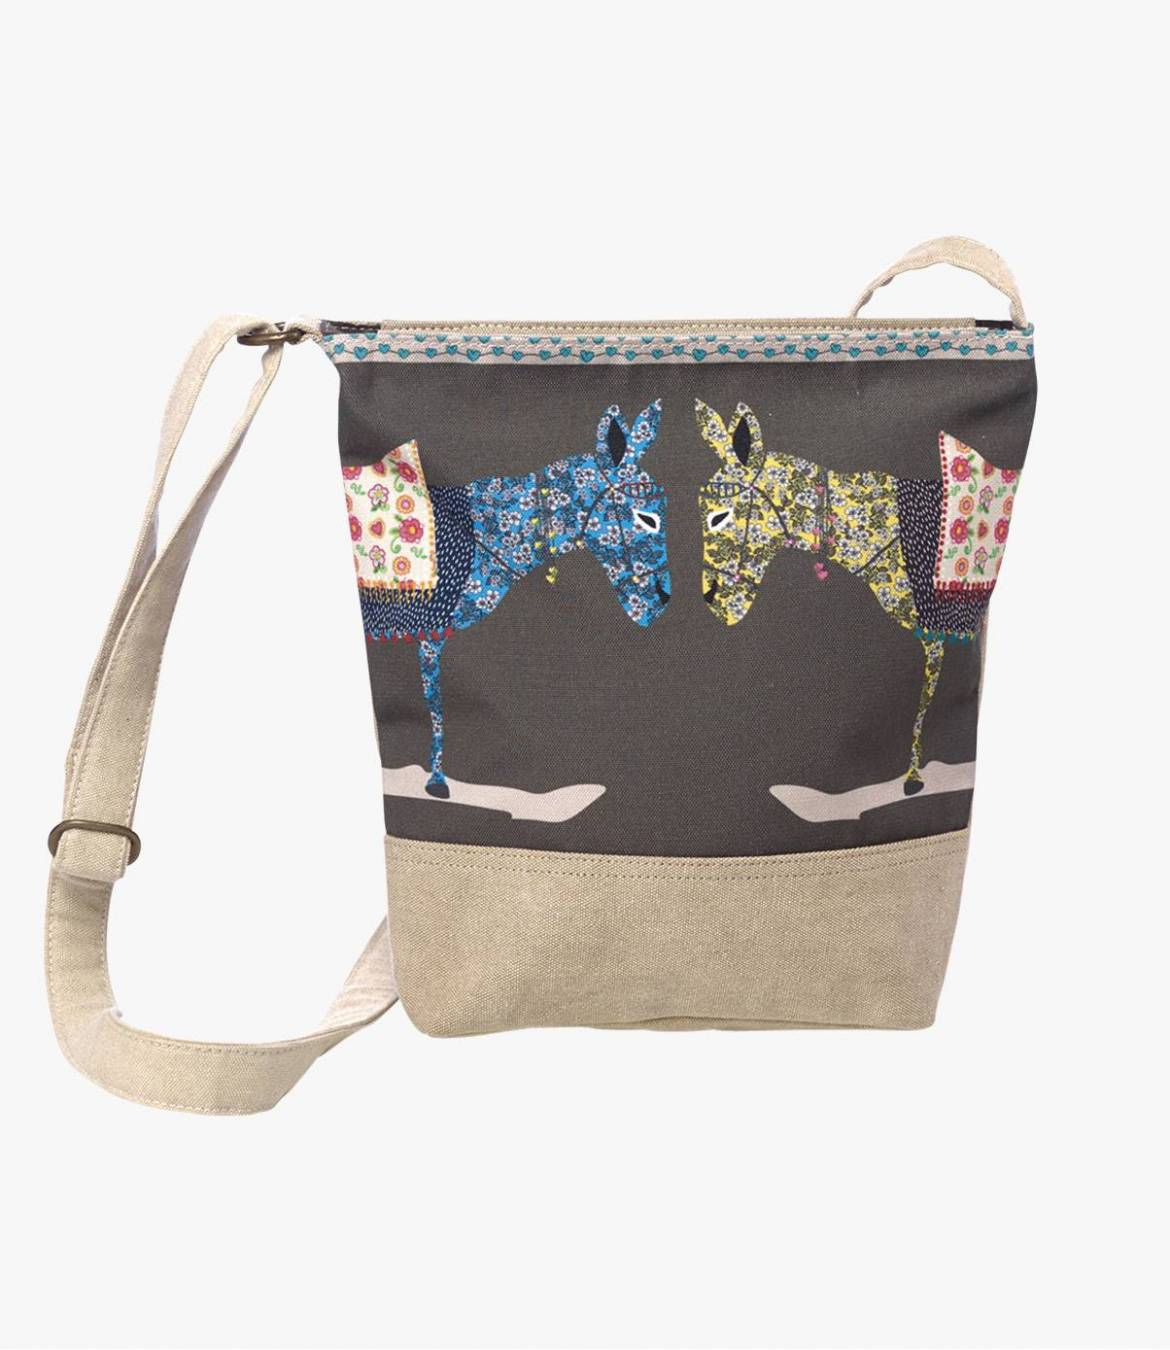 SLING PENNY Polyester Bag, Cotton, Women's Leather 33 x 10 x 28 cm Storiatipic - 1